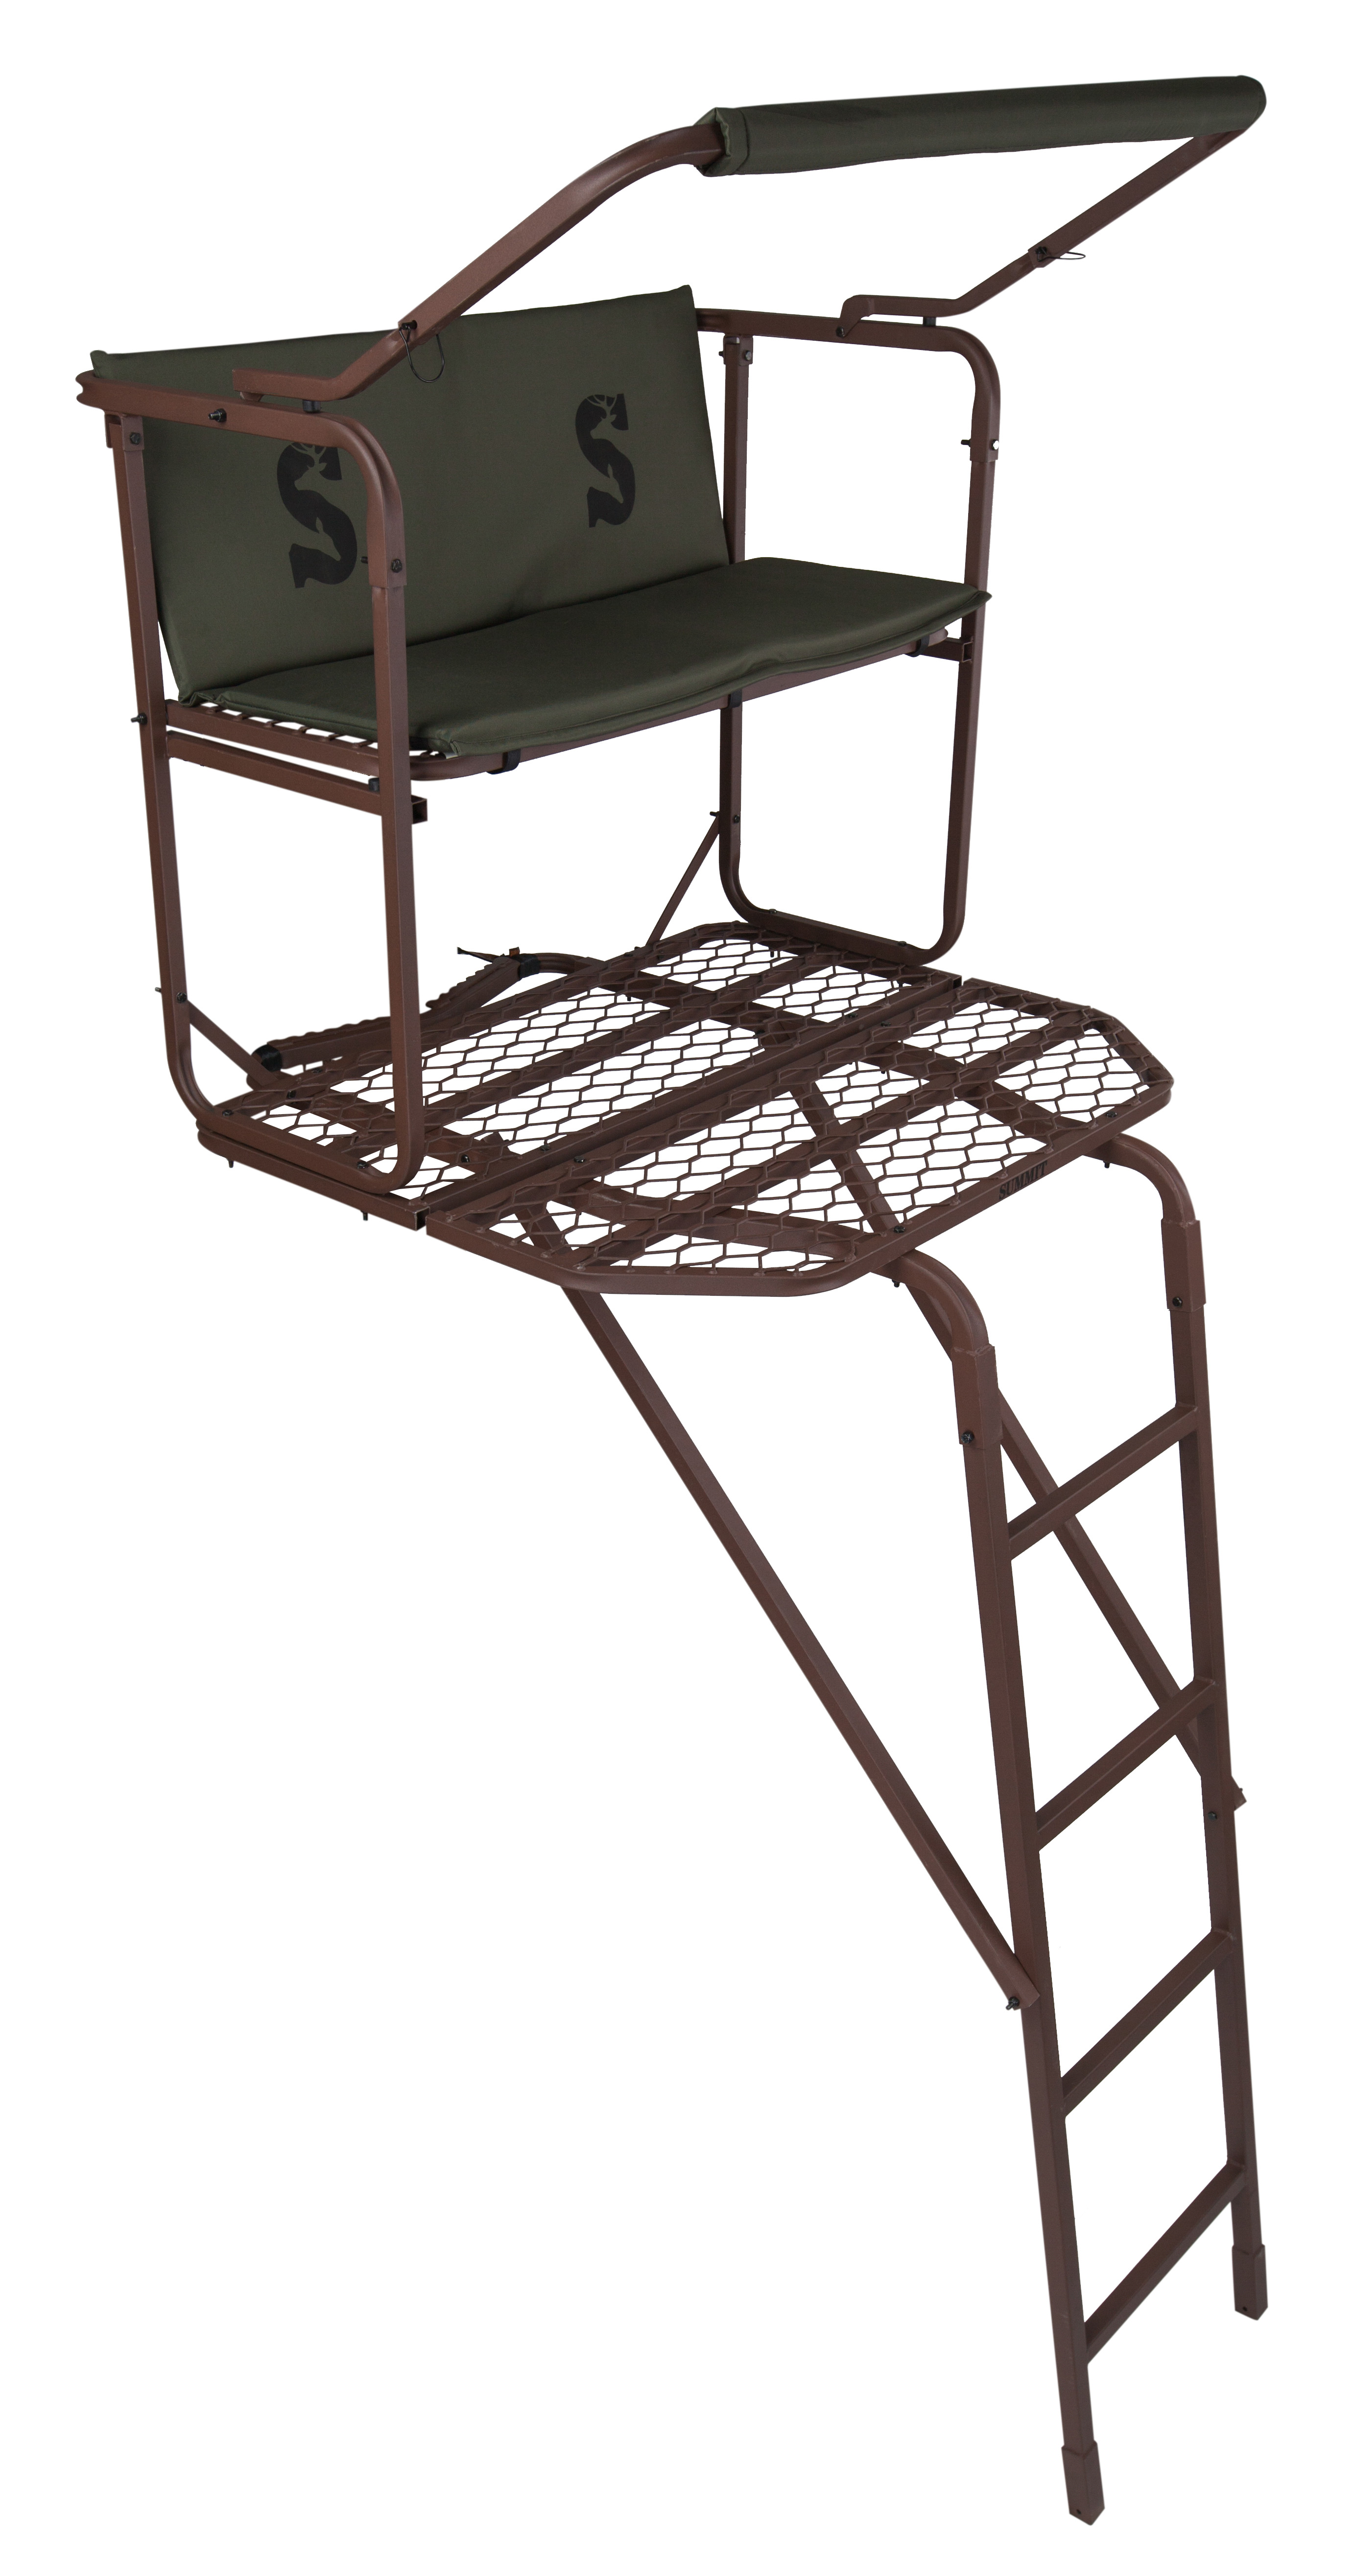 high chair deer stand gym on summit dual pro treestand big game ladderstand new 3 day details